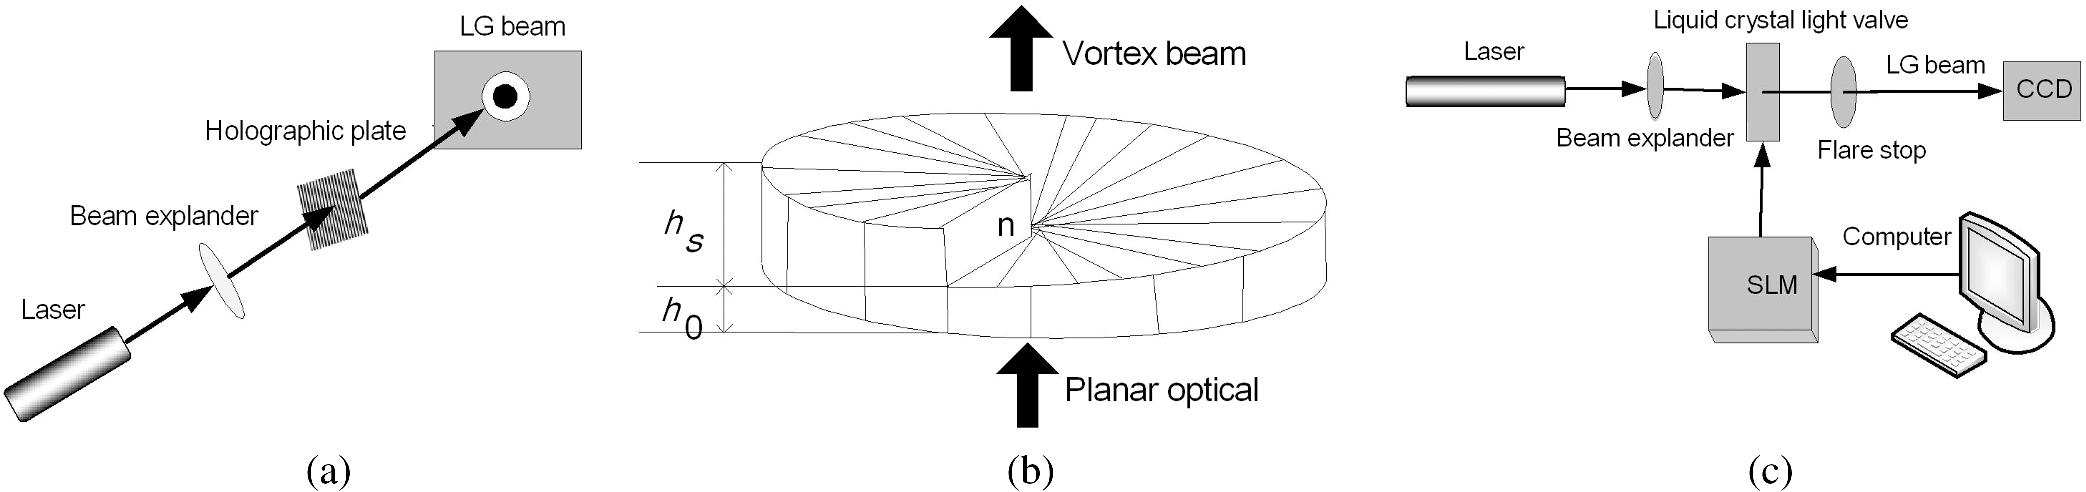 Potential Of Vortex Beams With Orbital Angular Momentum Modulation Block Diagram Moreover Frequency Further 8 Generation Methods Beam A Schematic The Hologram Preparation Lg B Spiral Phase Plate Wavefront